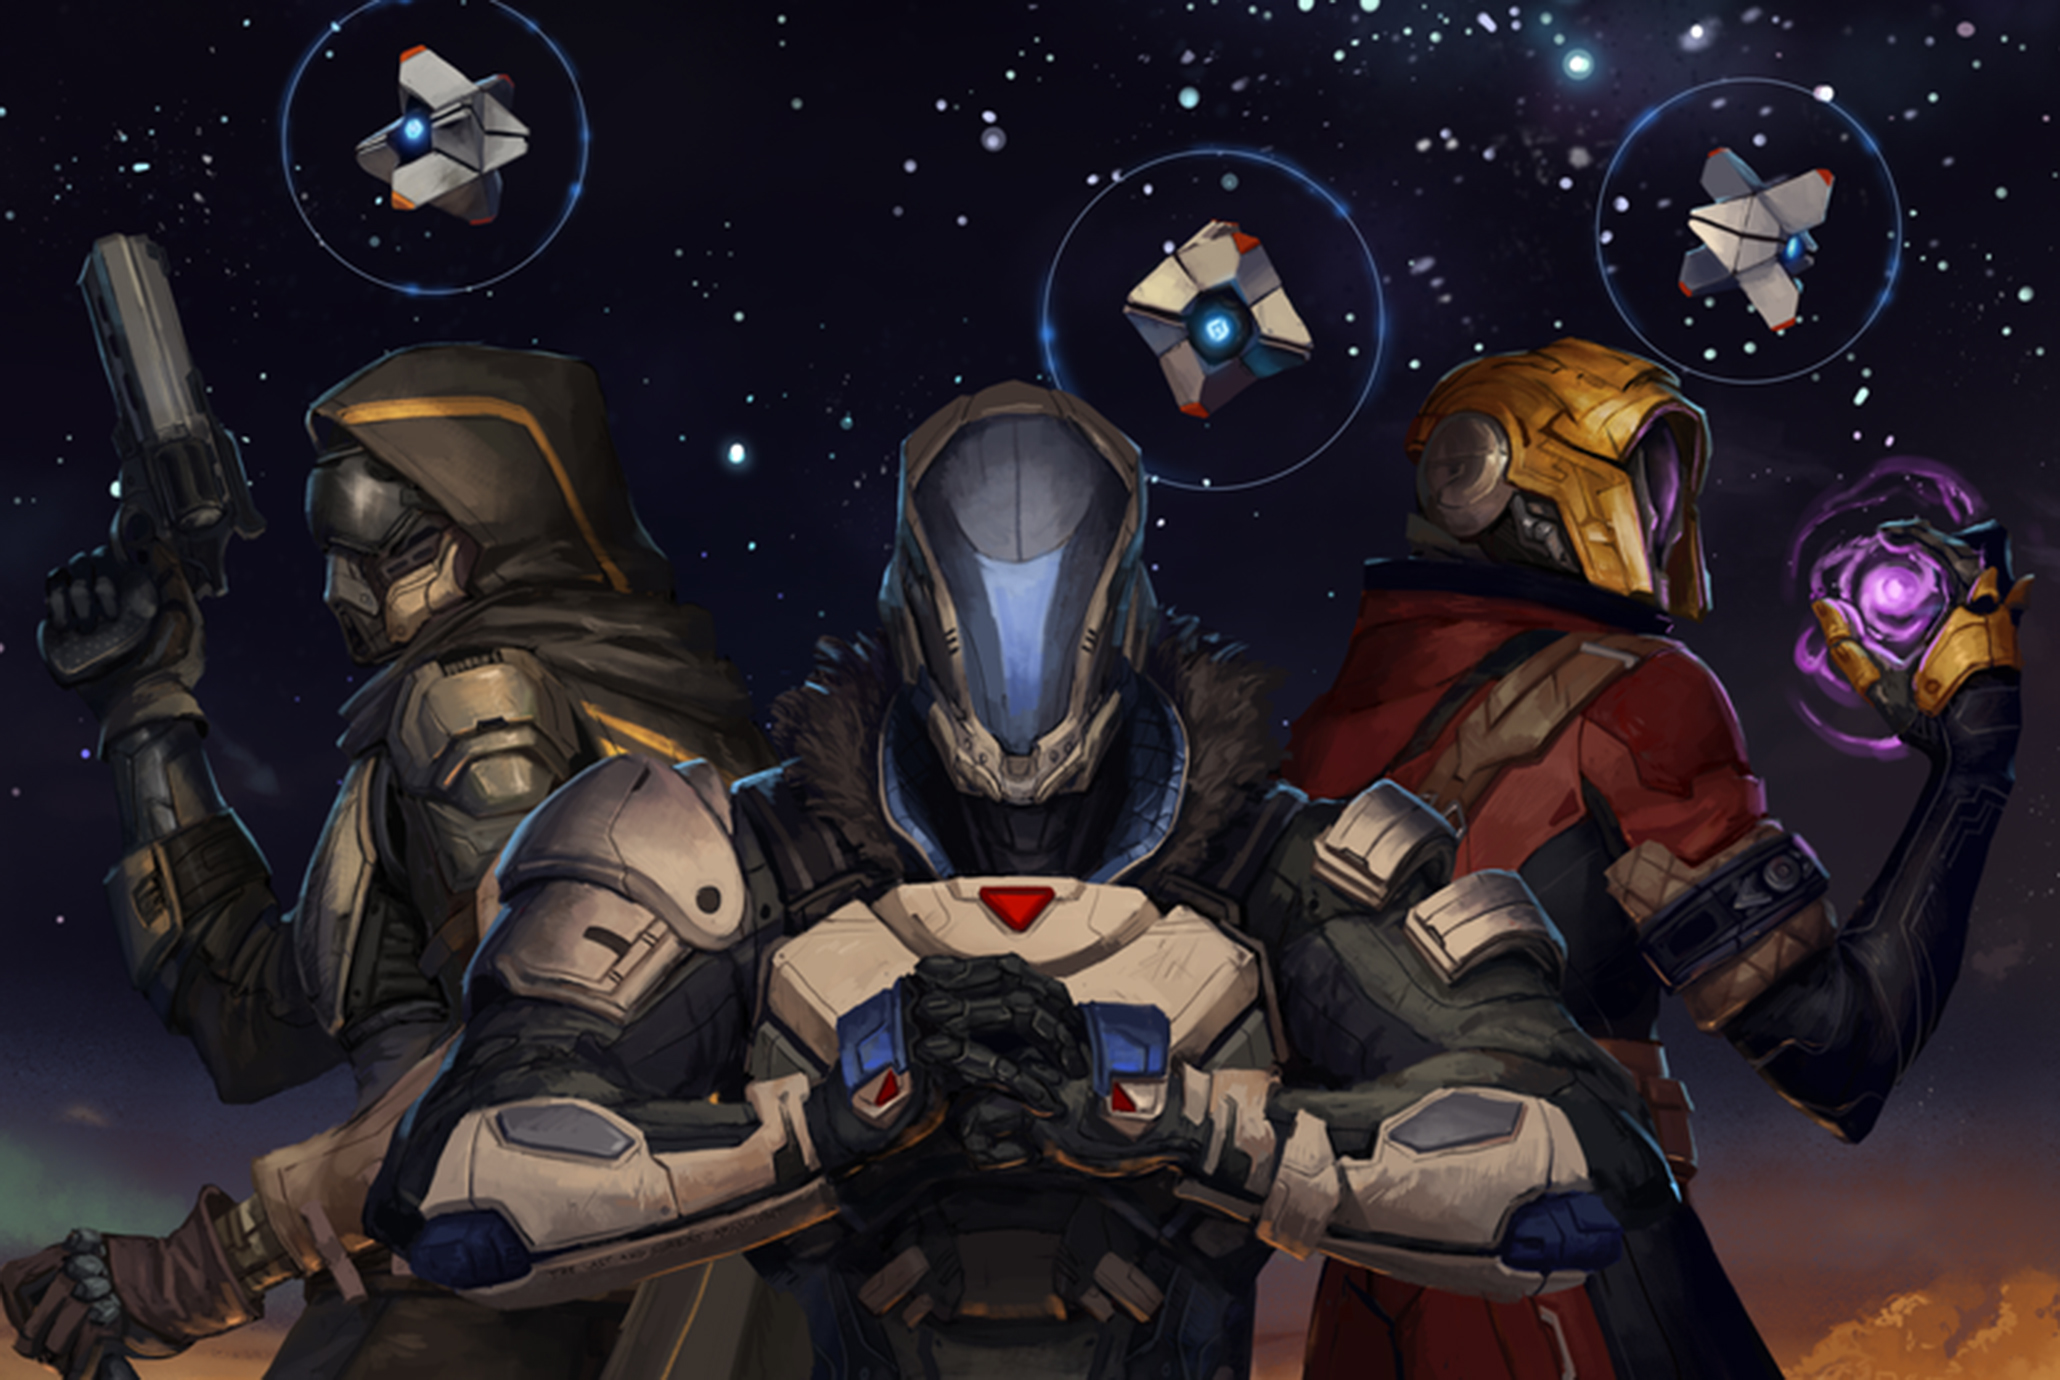 Three Guardians stand with their ghosts, weapons at the ready and the stars behind them.